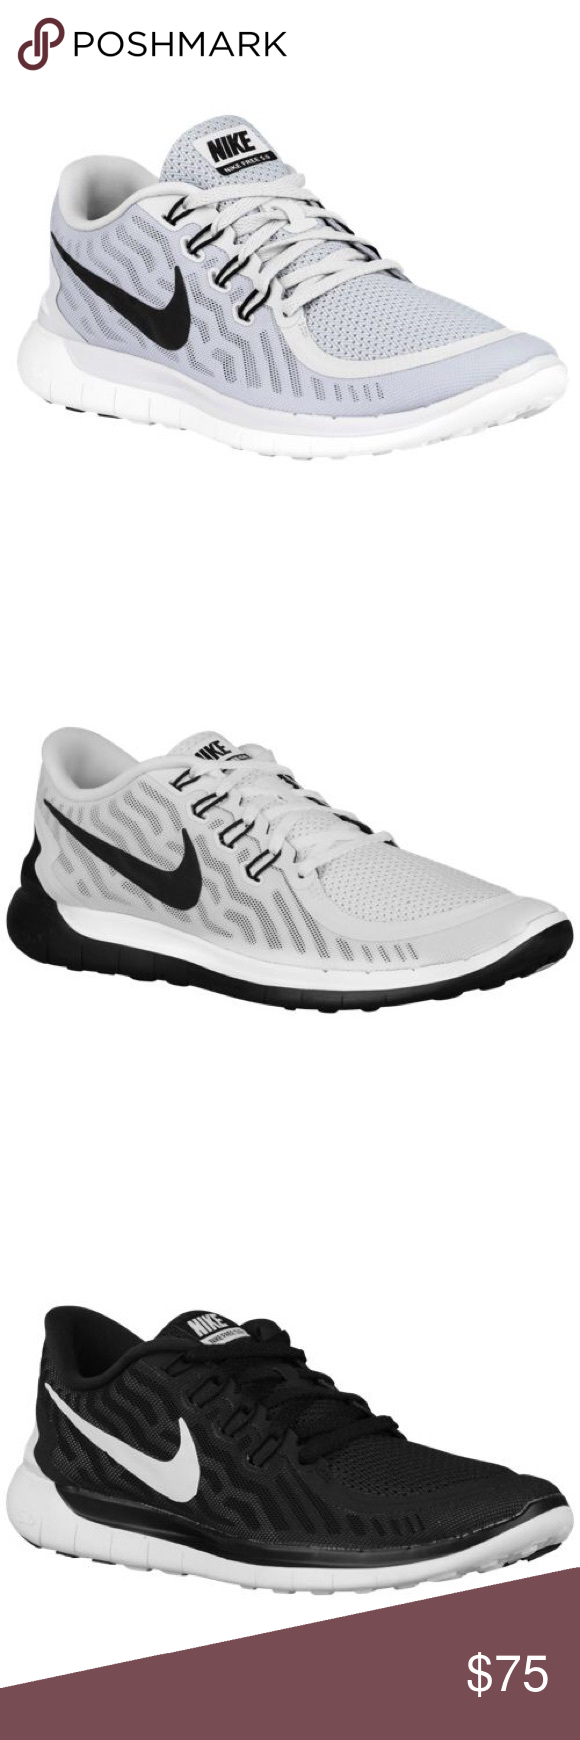 oben ISO Nike Free Run 5 Looking for the all white Nike Free